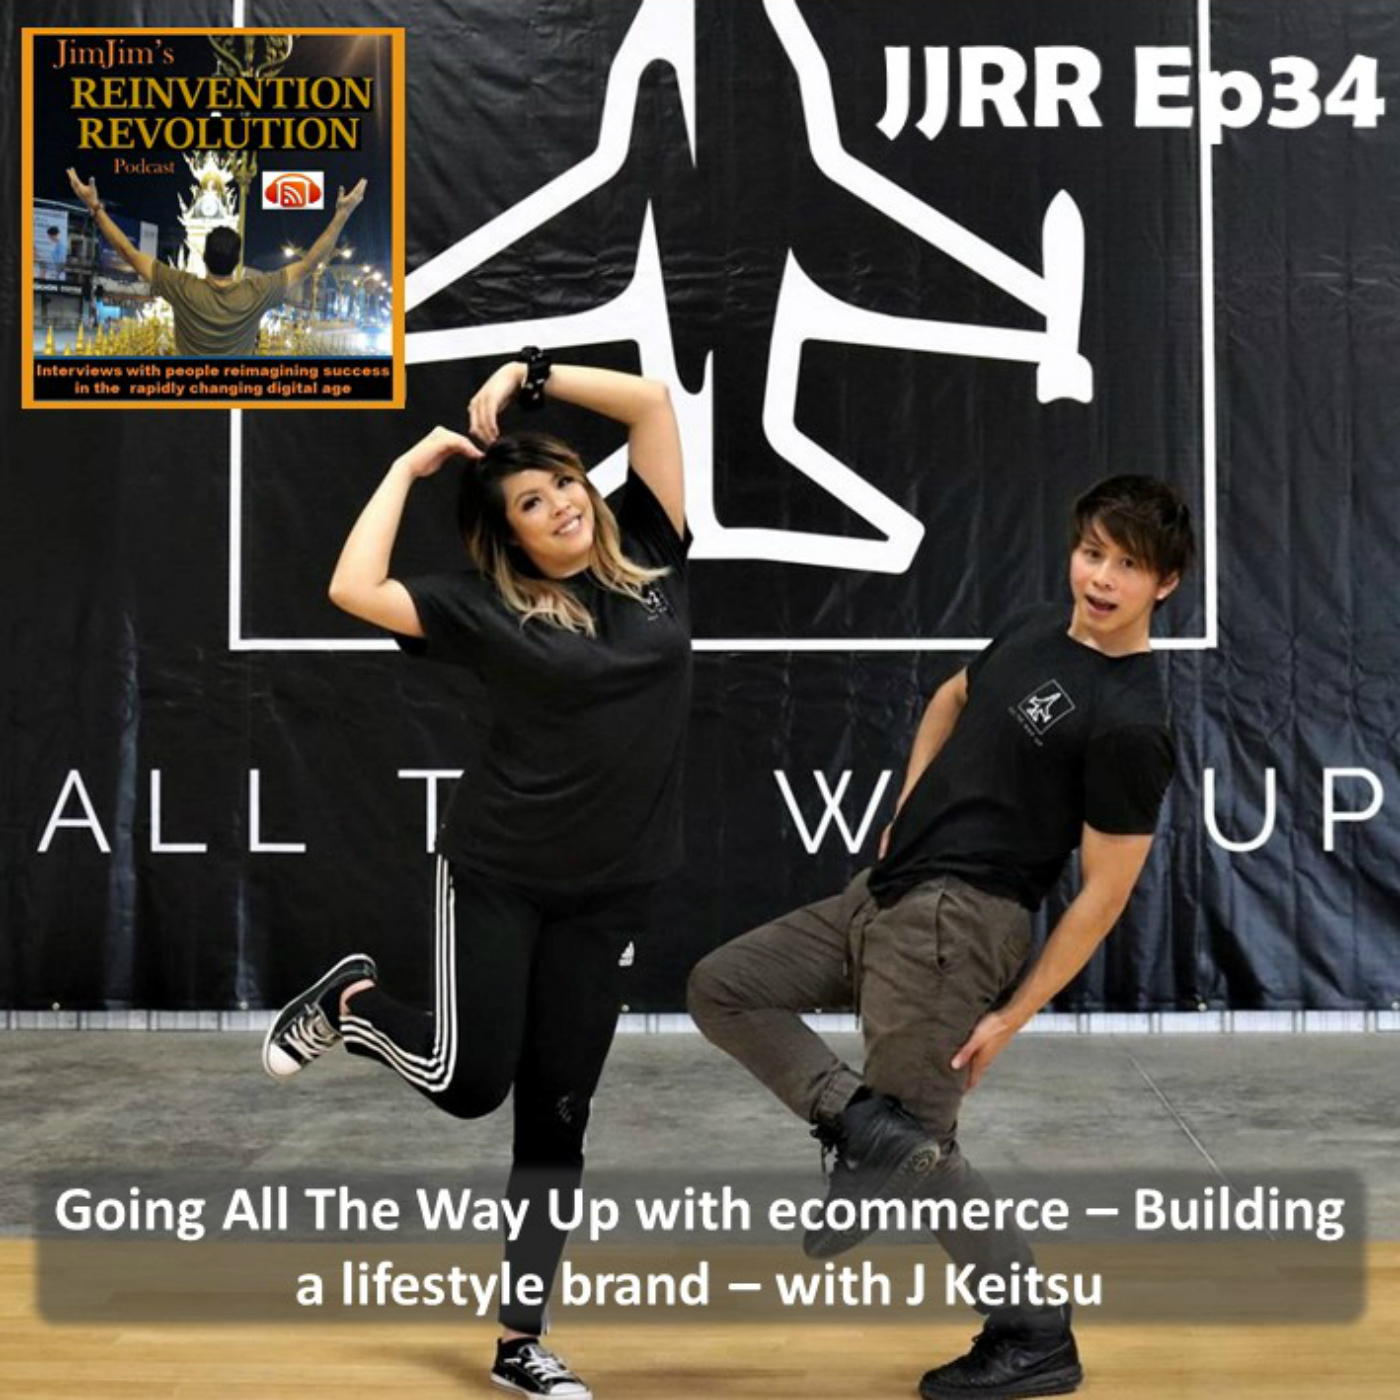 JJRR Ep34 Going All The Way Up with ecommerce – Building a lifestyle brand – with J Keitsu